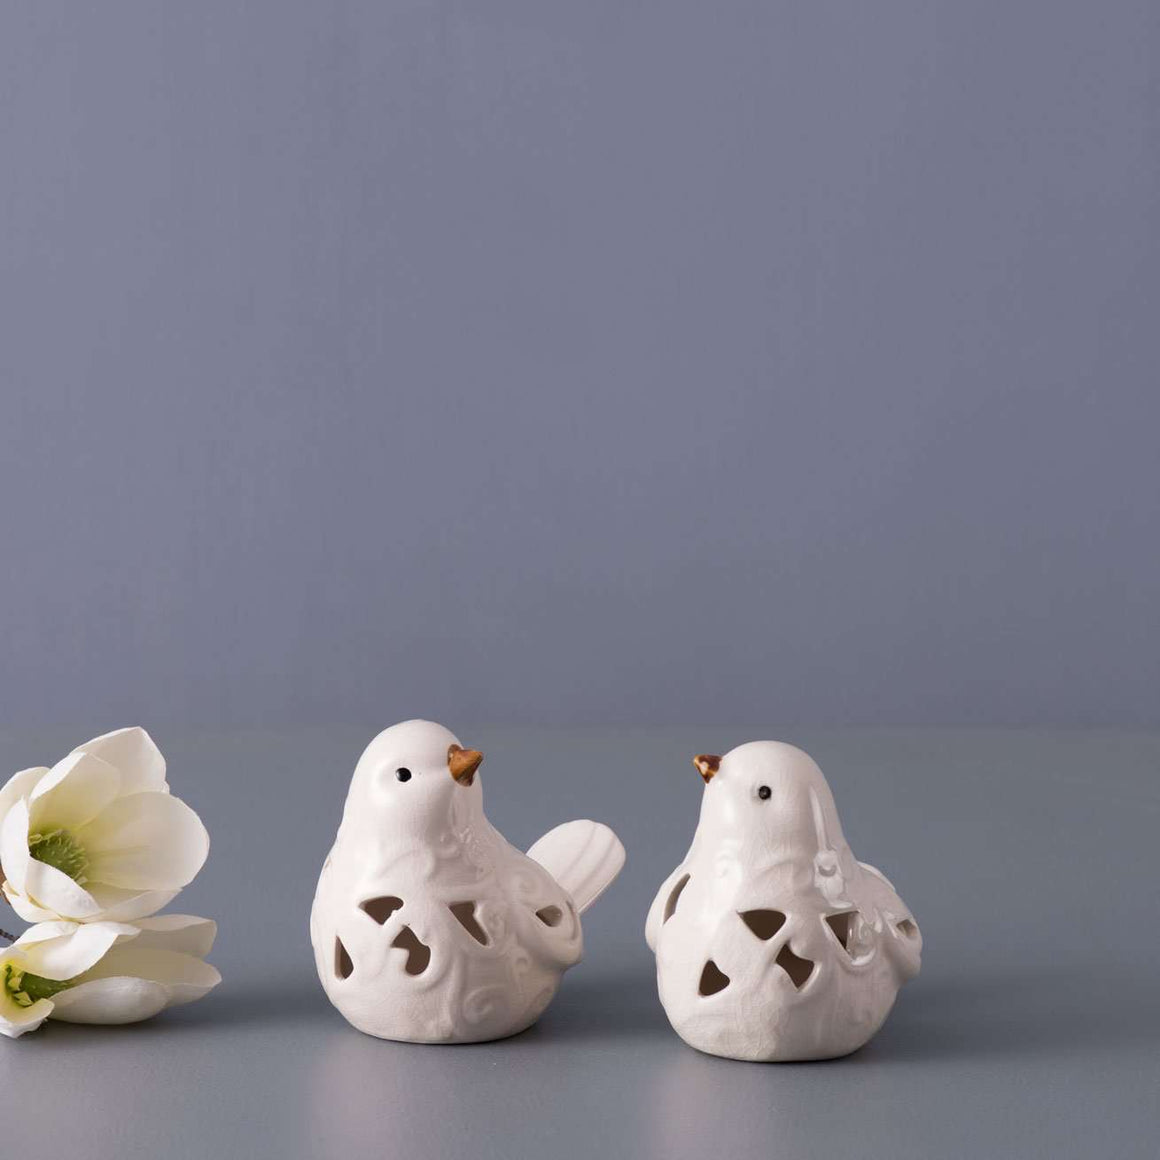 Set of 2 Cutout Bird Figurines - White